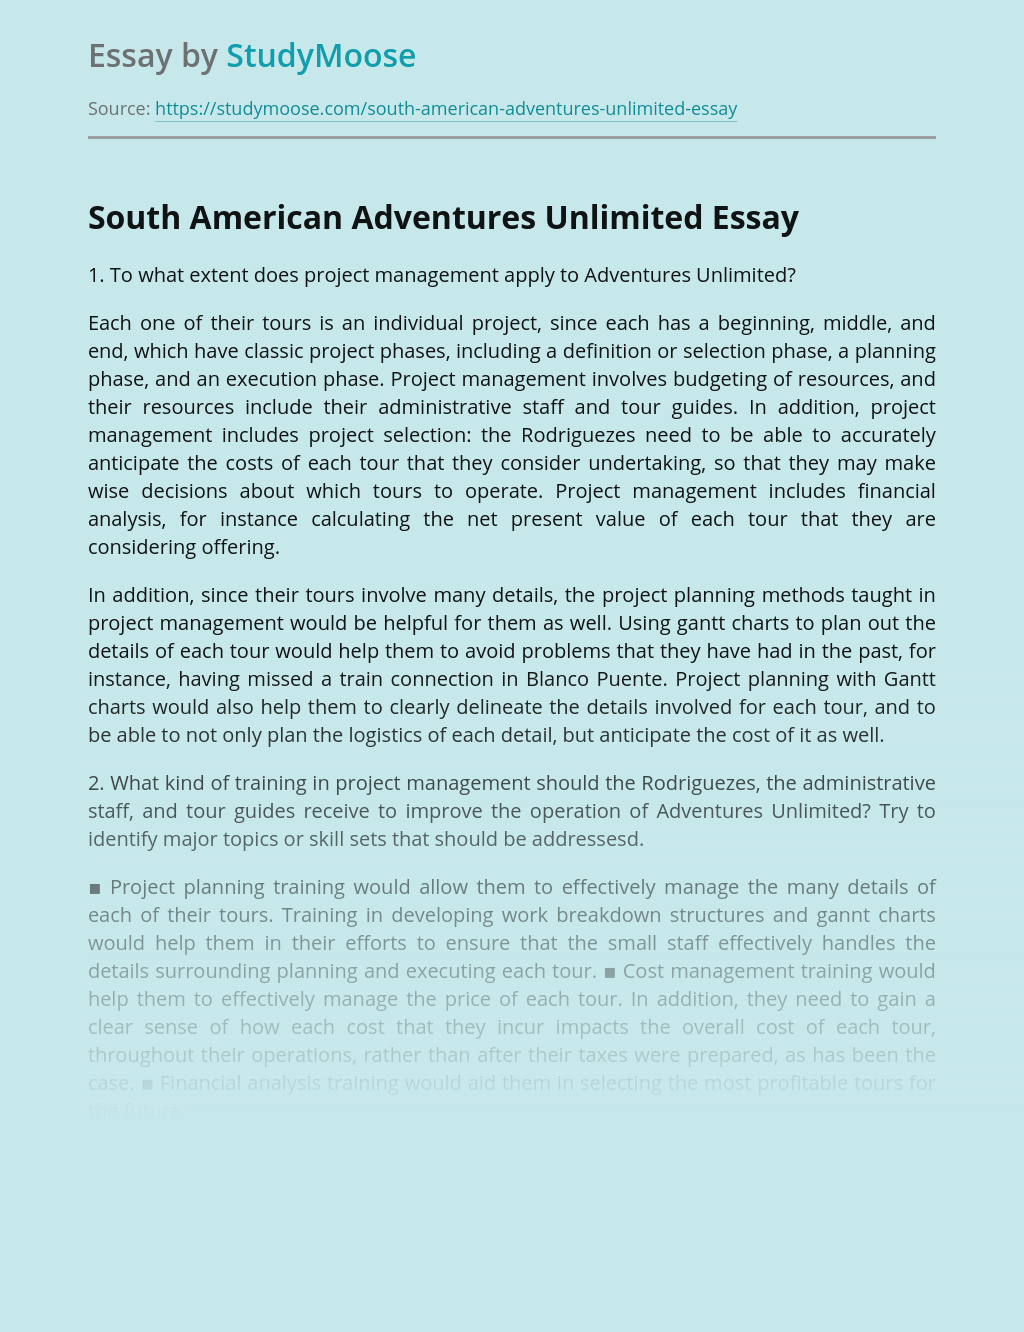 South American Adventures Unlimited